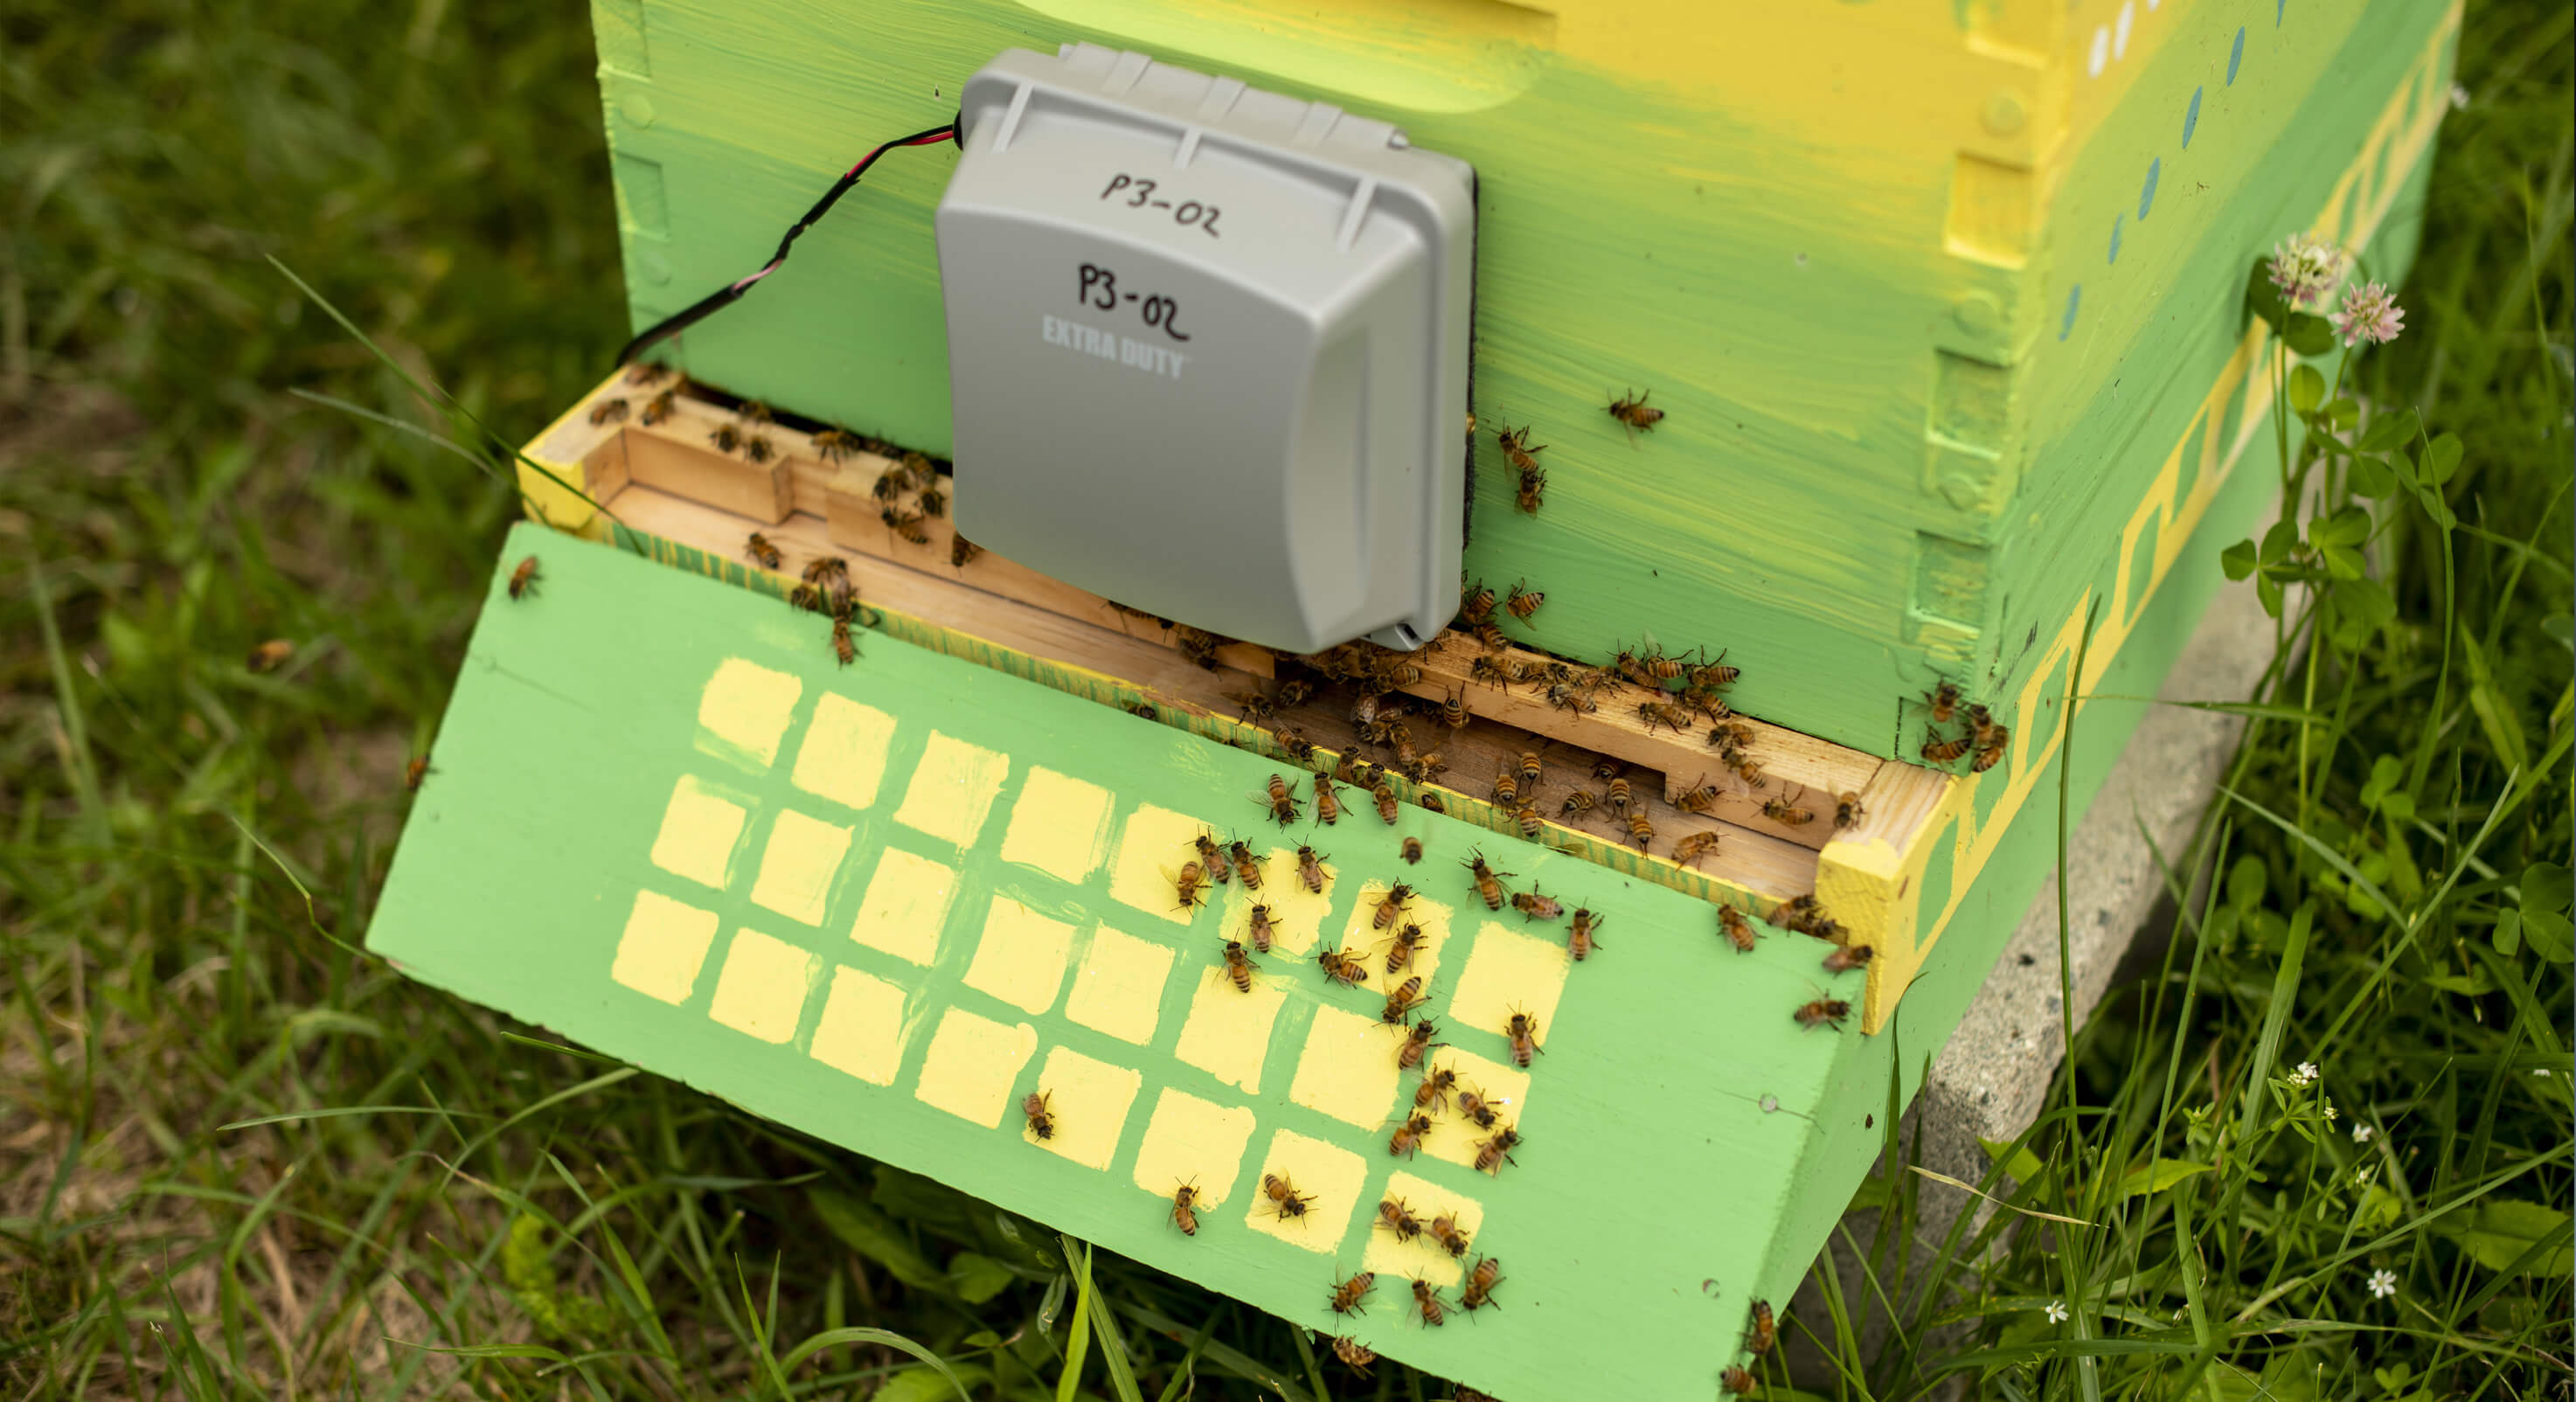 Healthy-hives-centered-image-1-1